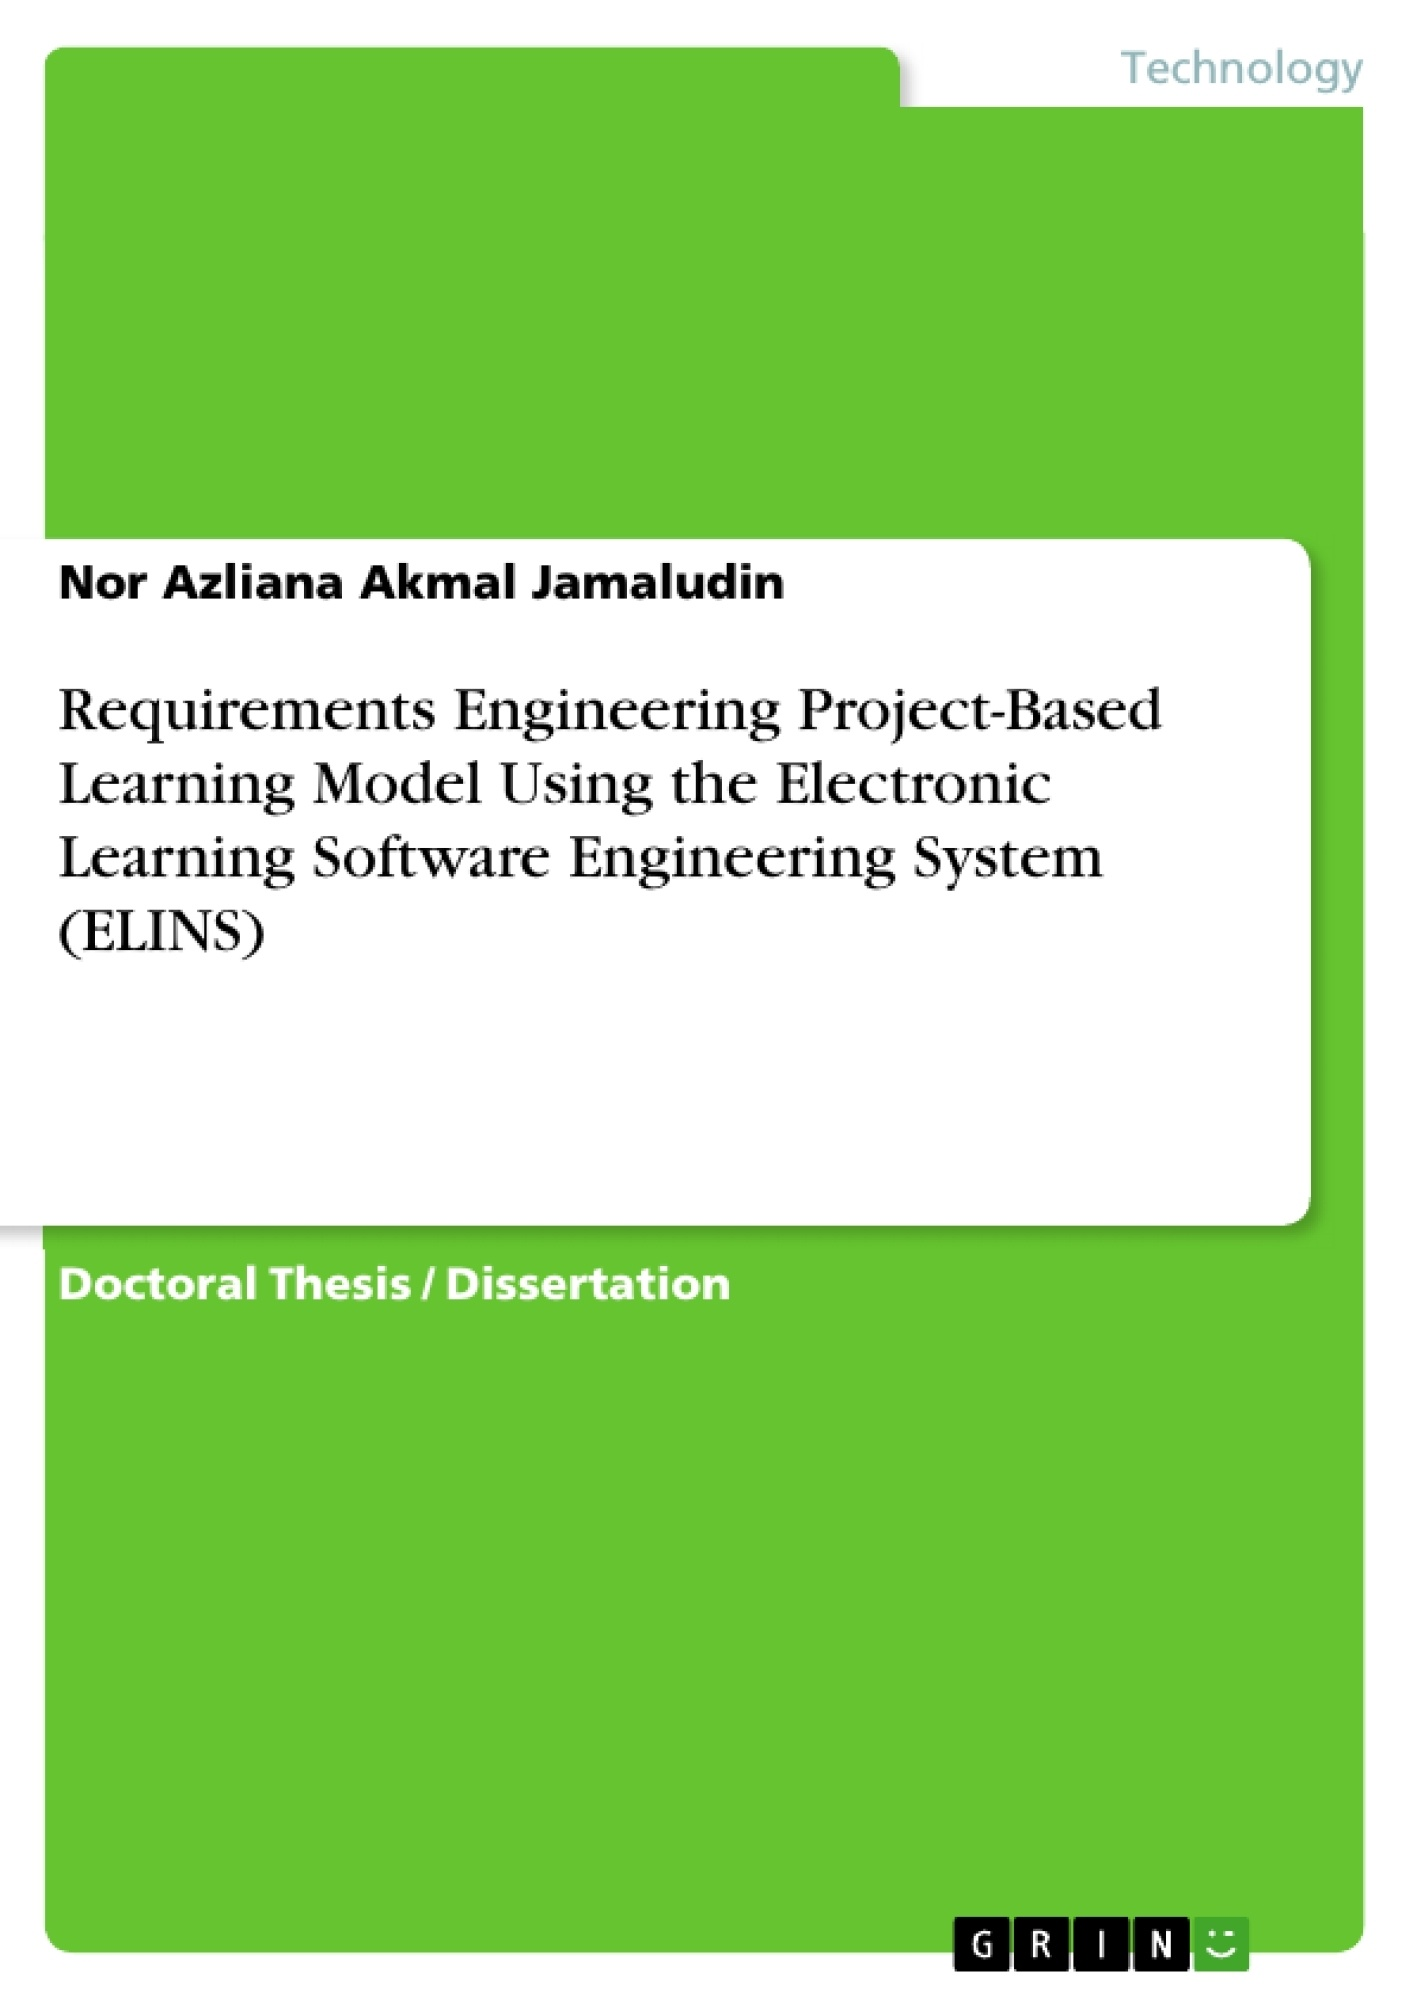 Title: Requirements Engineering Project-Based Learning Model Using the Electronic Learning Software Engineering System (ELINS)